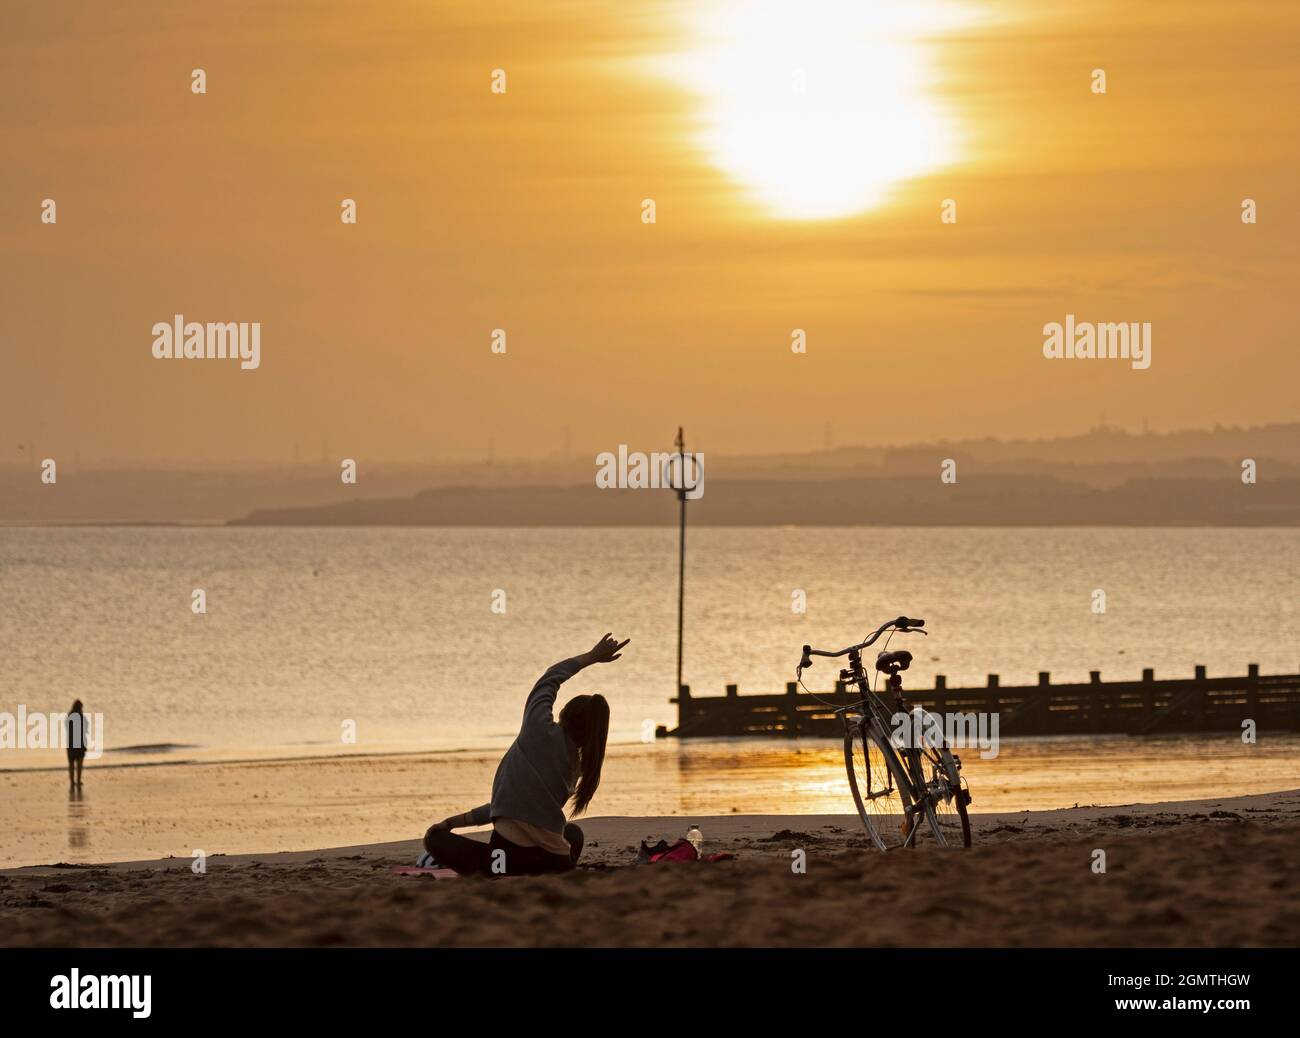 Portobello, Edinburgh, Scotland, UK weather. 21st September 2021.Temperature of 10 degrees centigrade, a young female cyclist takes yoga exercise on the sandy beach just after sunrise by the Firth of Forth. Credit: Arch White/Alamy Live News. Stock Photo